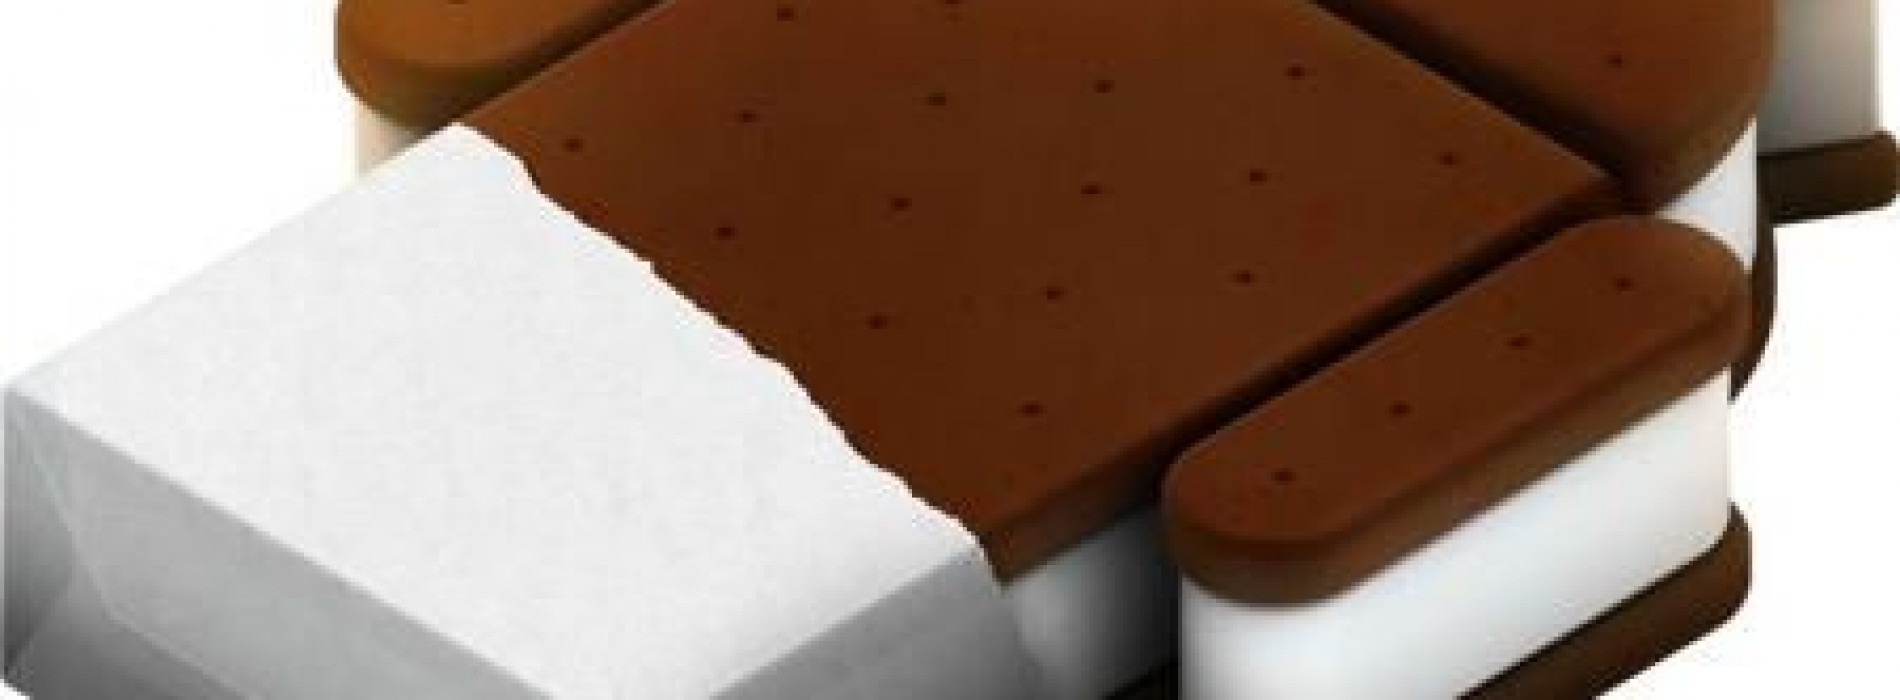 Google announces Ice Cream Sandwich update for GSM Nexus S devices